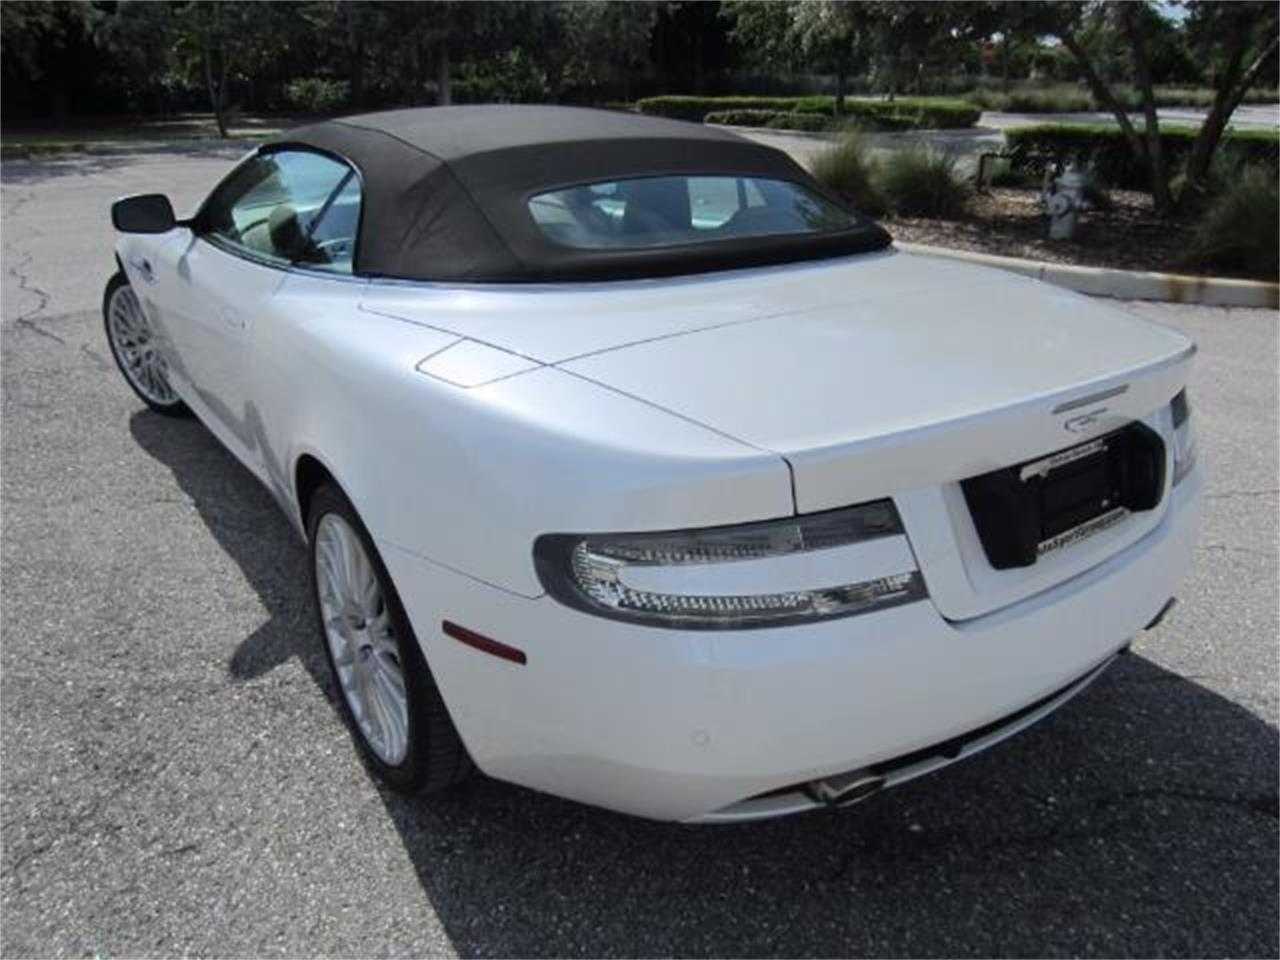 Large Picture of 2009 Aston Martin DB9 located in Delray Beach Florida - $64,900.00 Offered by Autosport Group - L8Y9